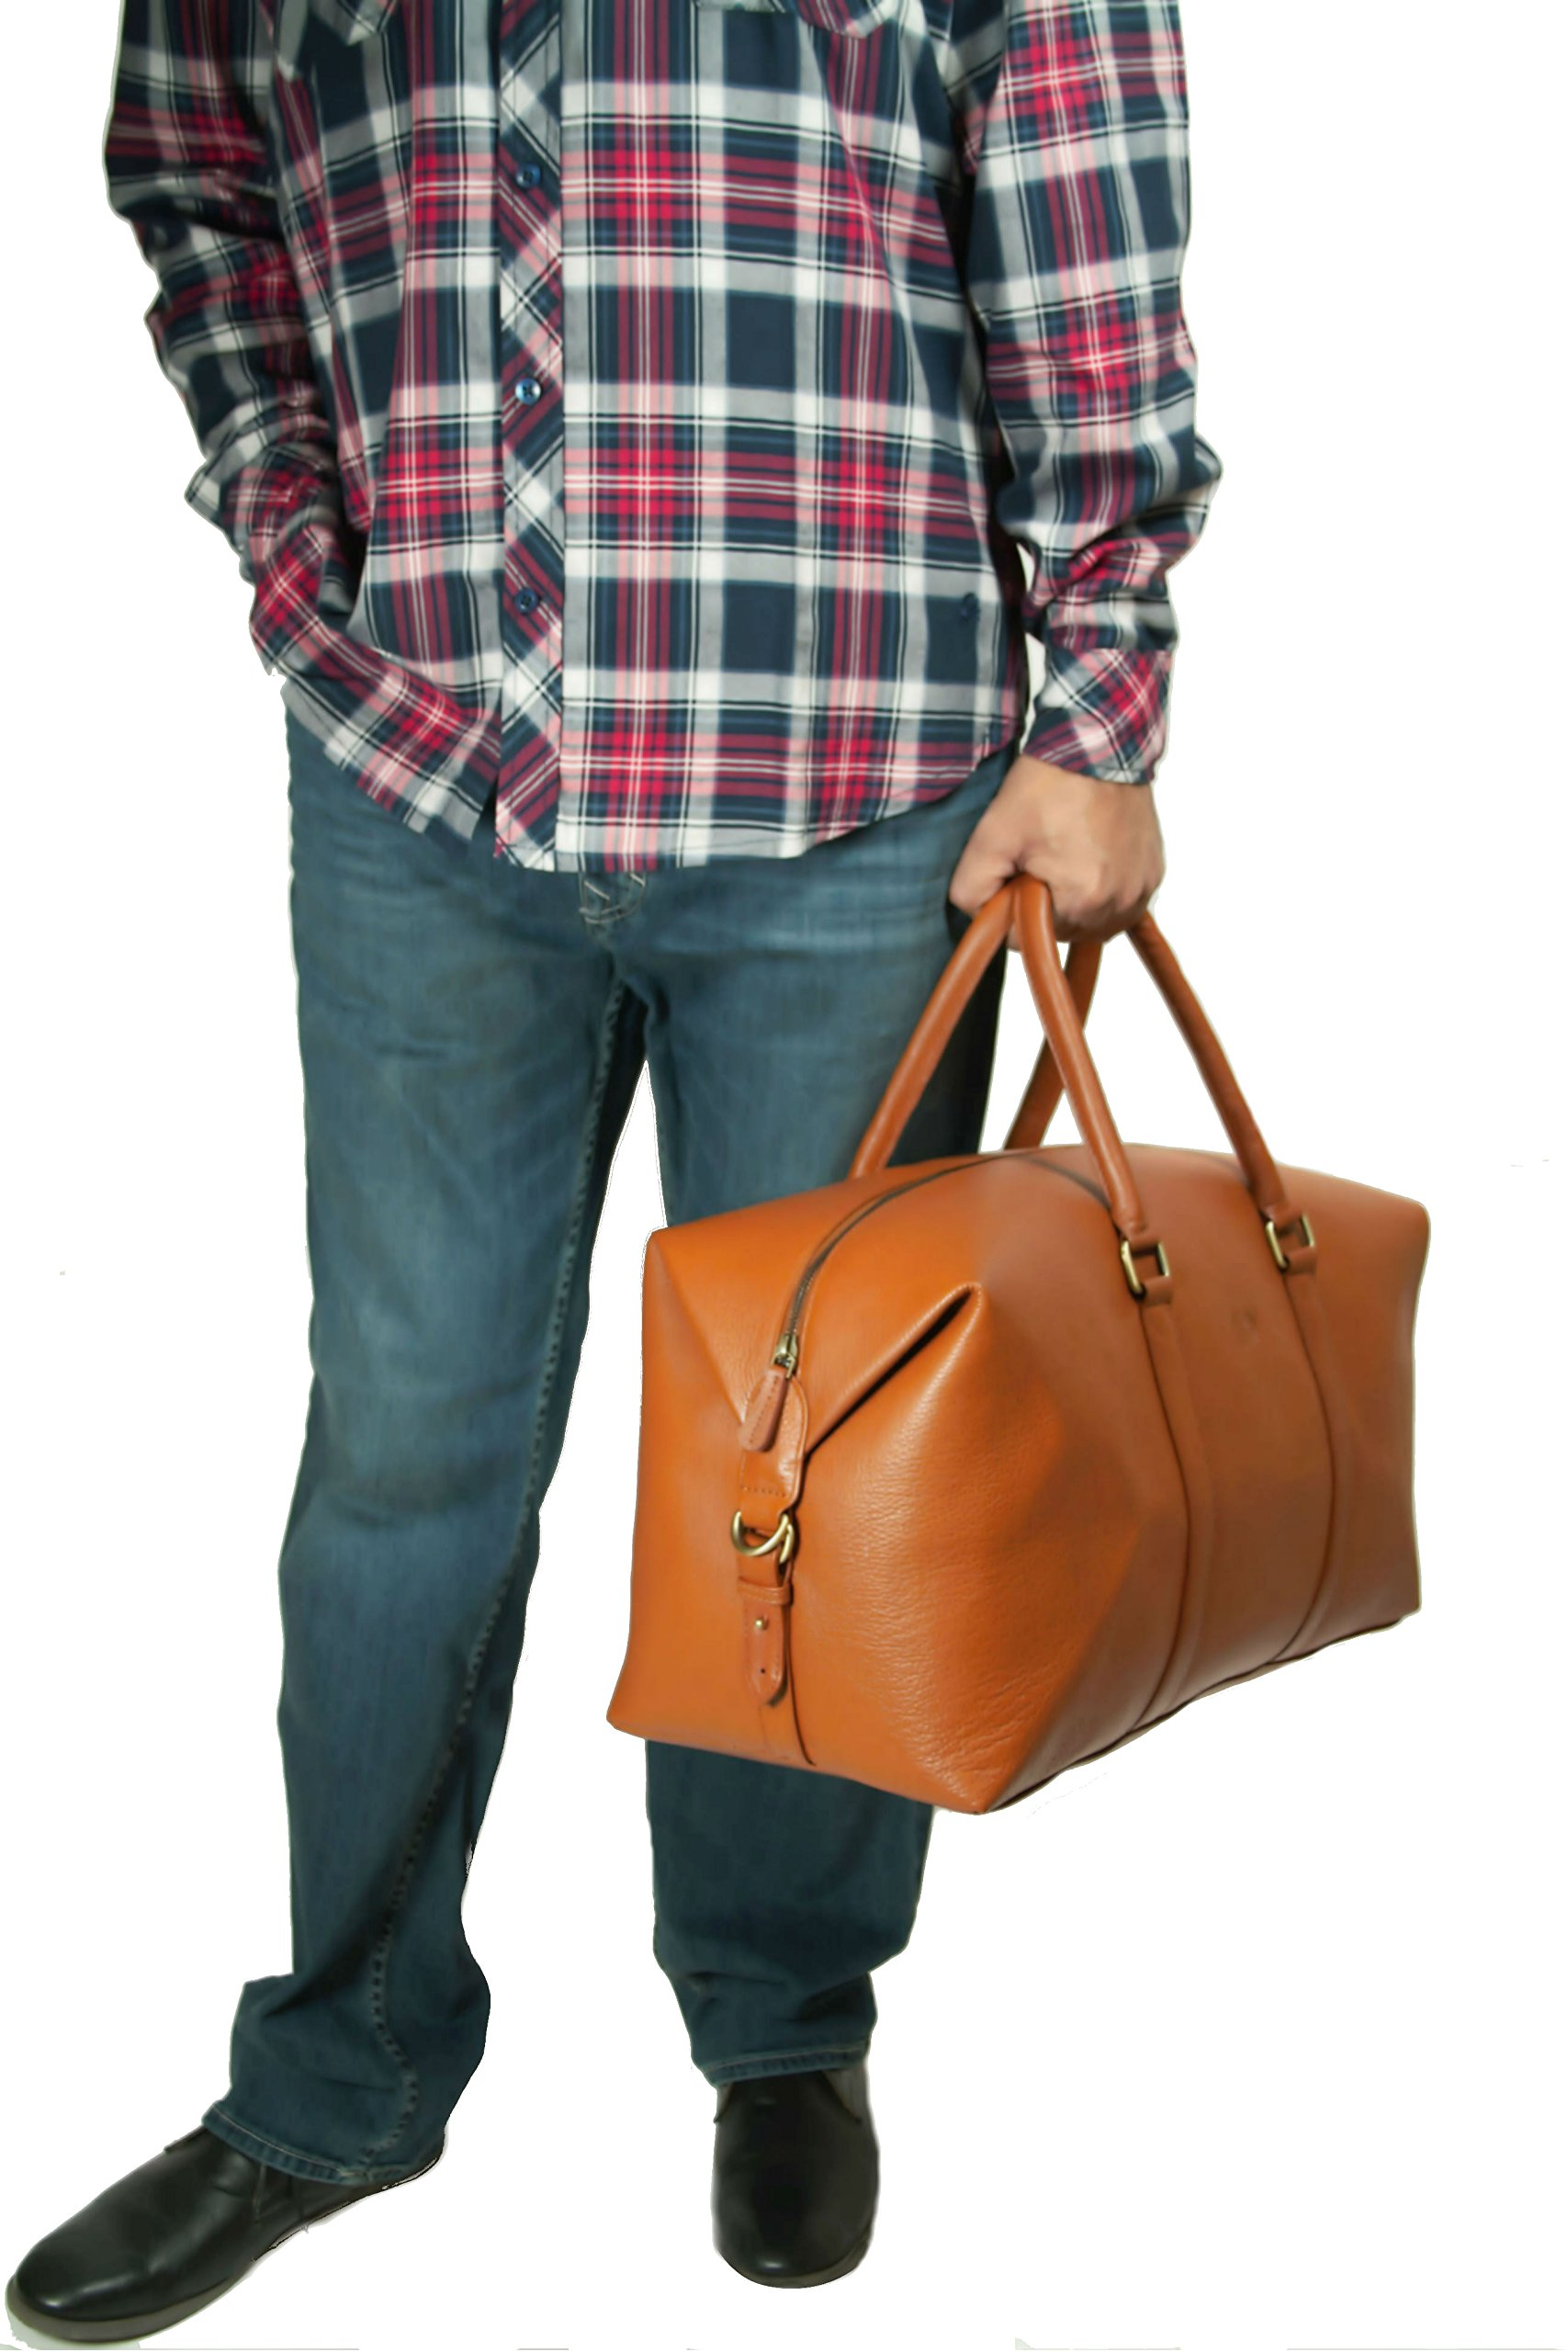 LeftOver Studio Expandable Weekend Overnight Travel Duffel Bag in Tan Top Grain Cow Leather by Leftover Studio (Image #5)